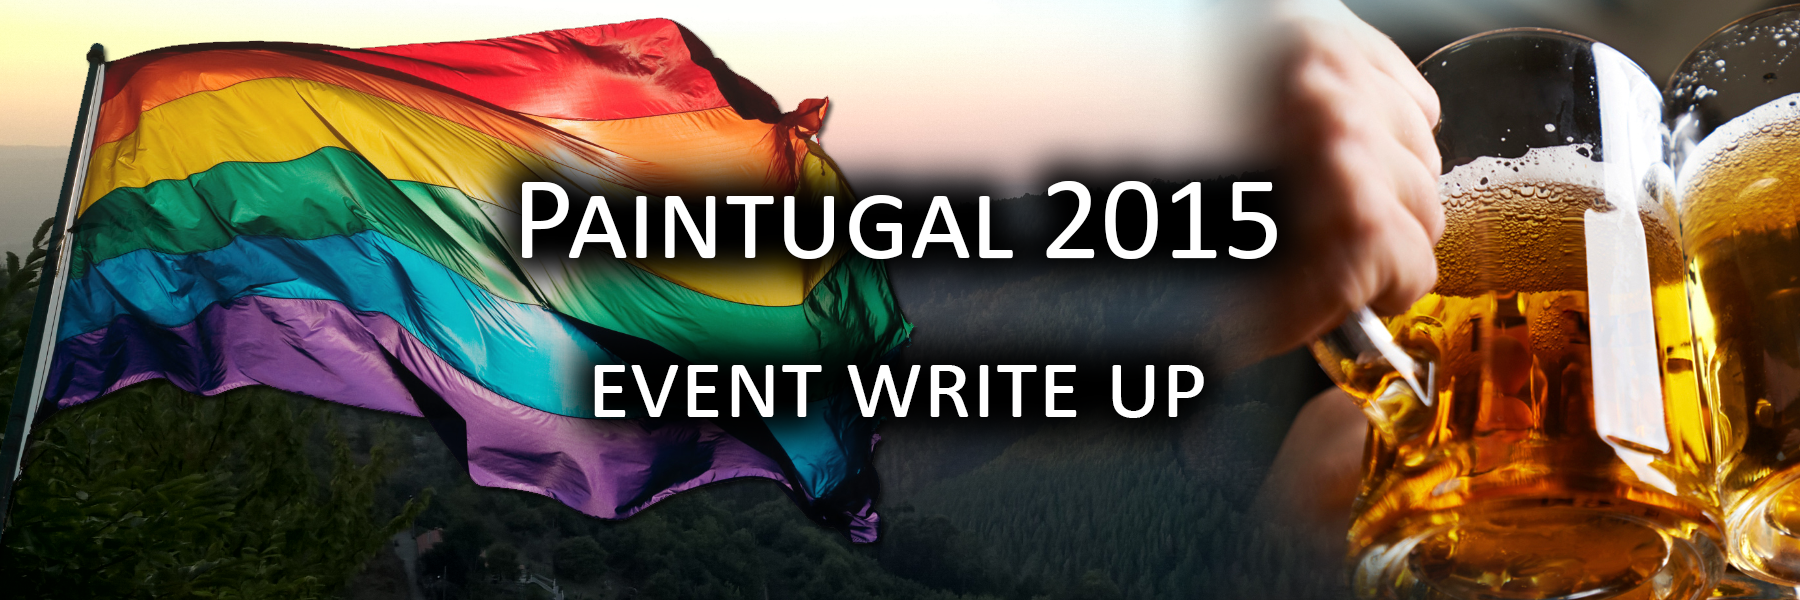 Paintugal 2015 Event Writeup